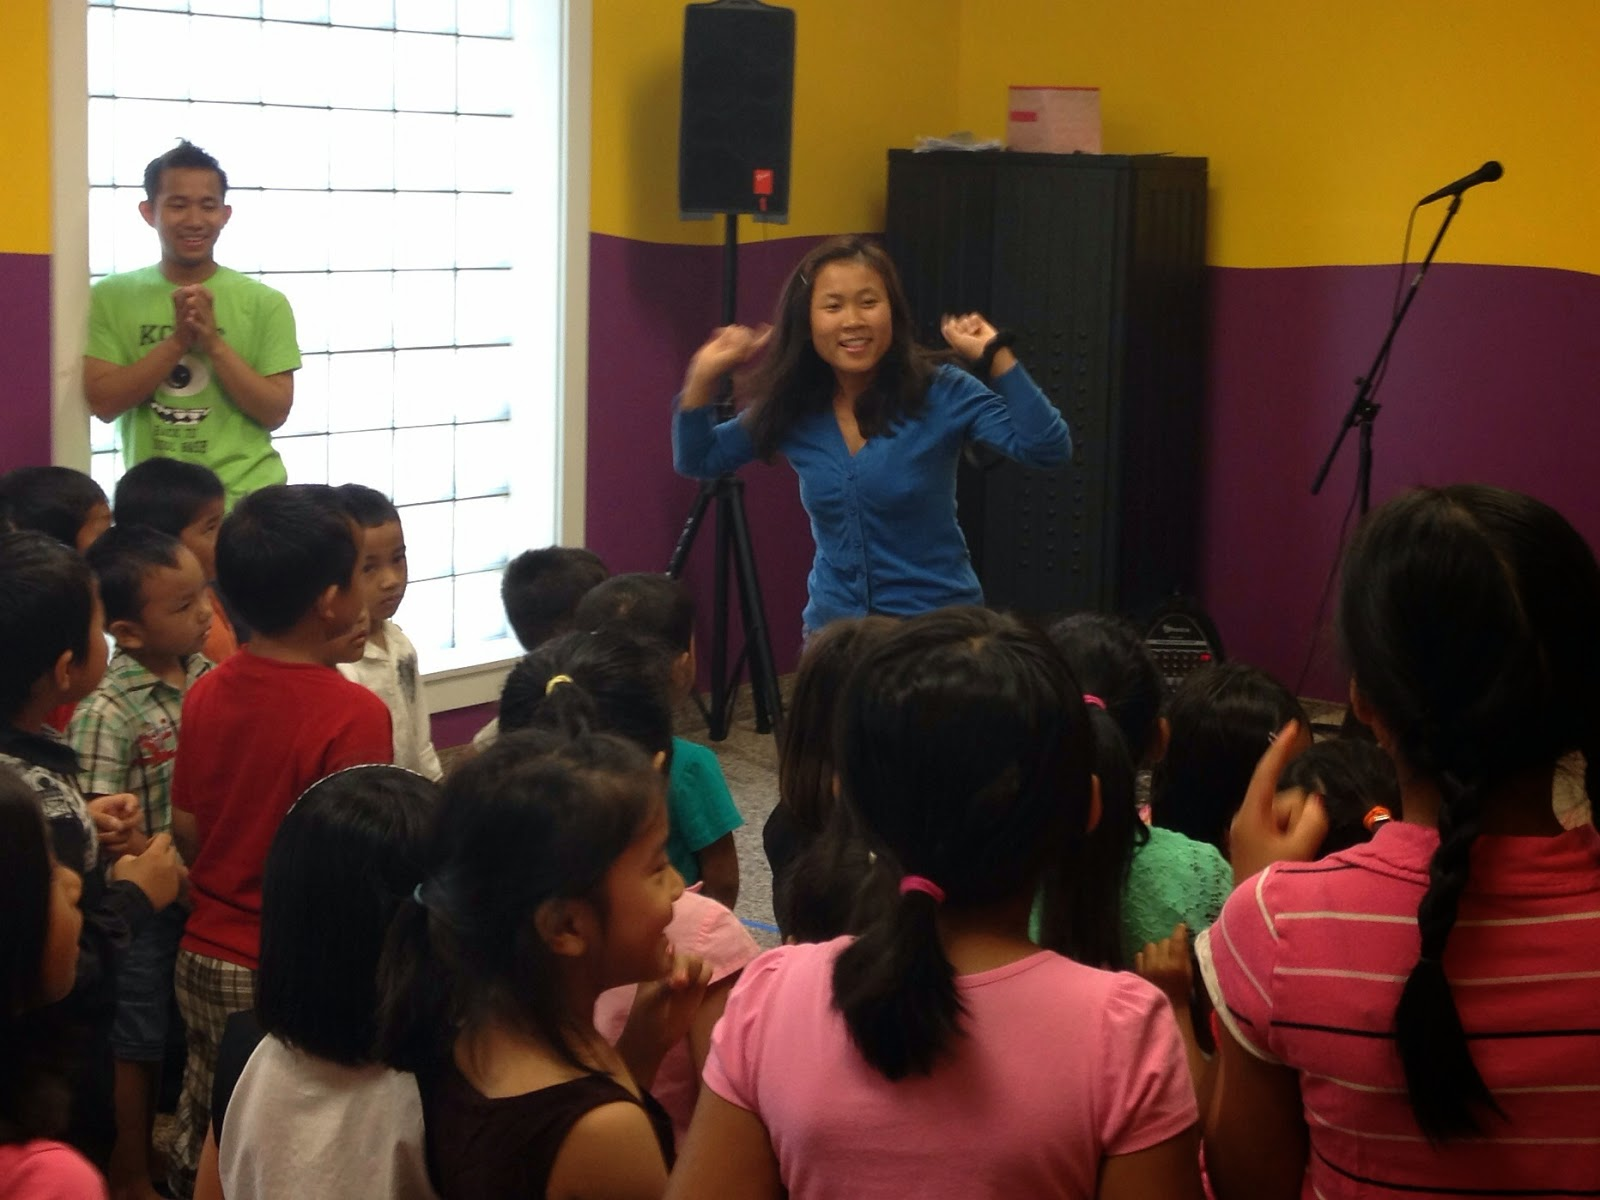 Teacher Mawi Te leads the kids in a song